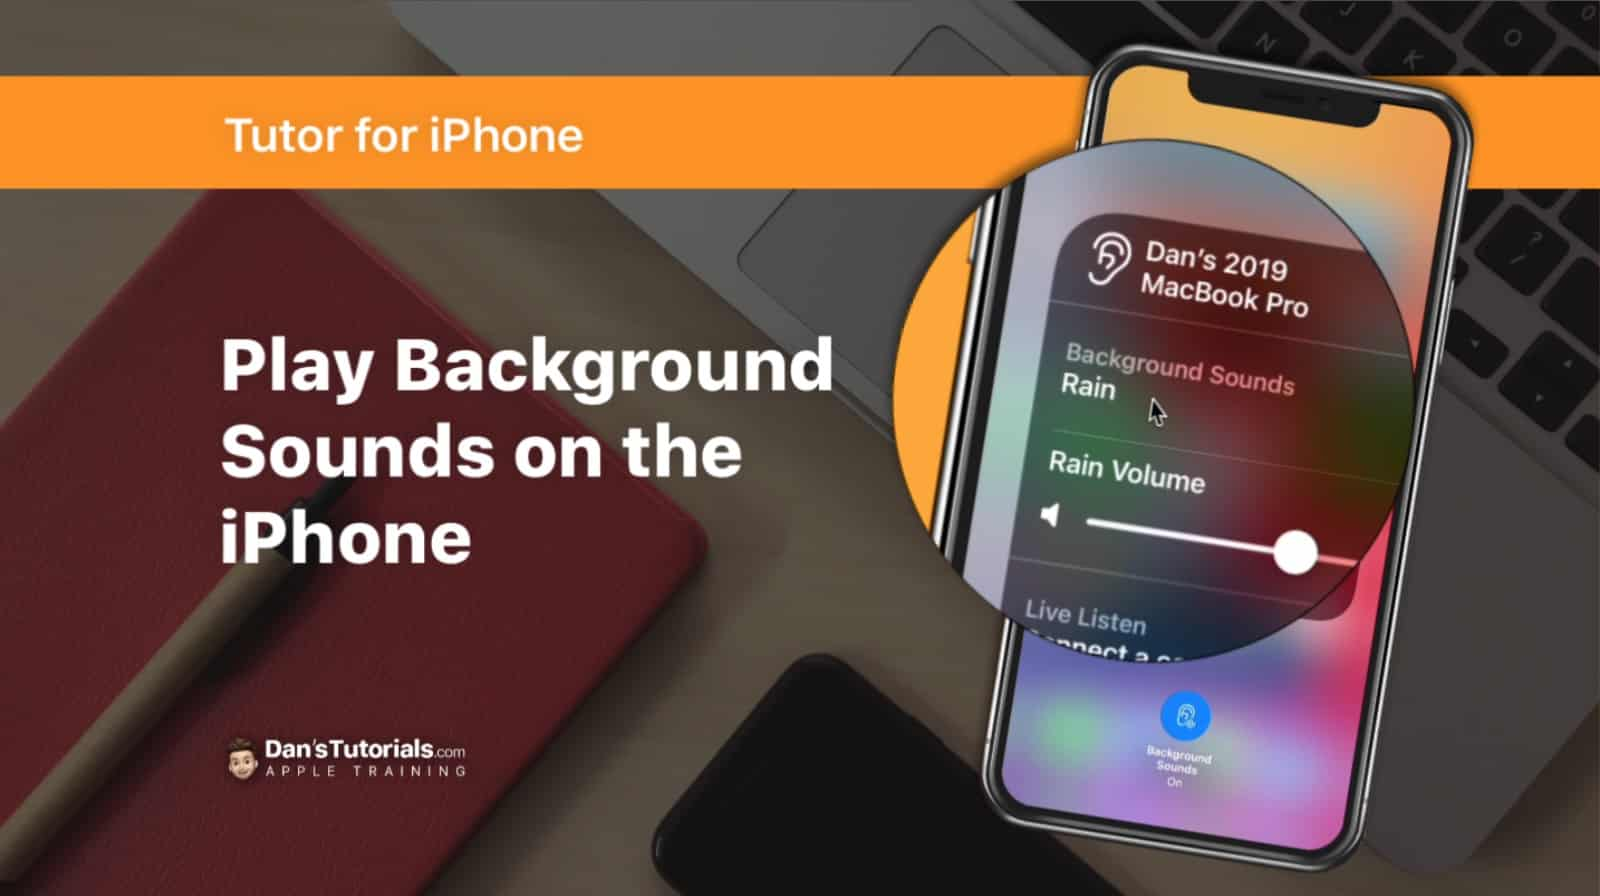 Learn how to play background sounds, such as rain or a stream, on the iPhone.